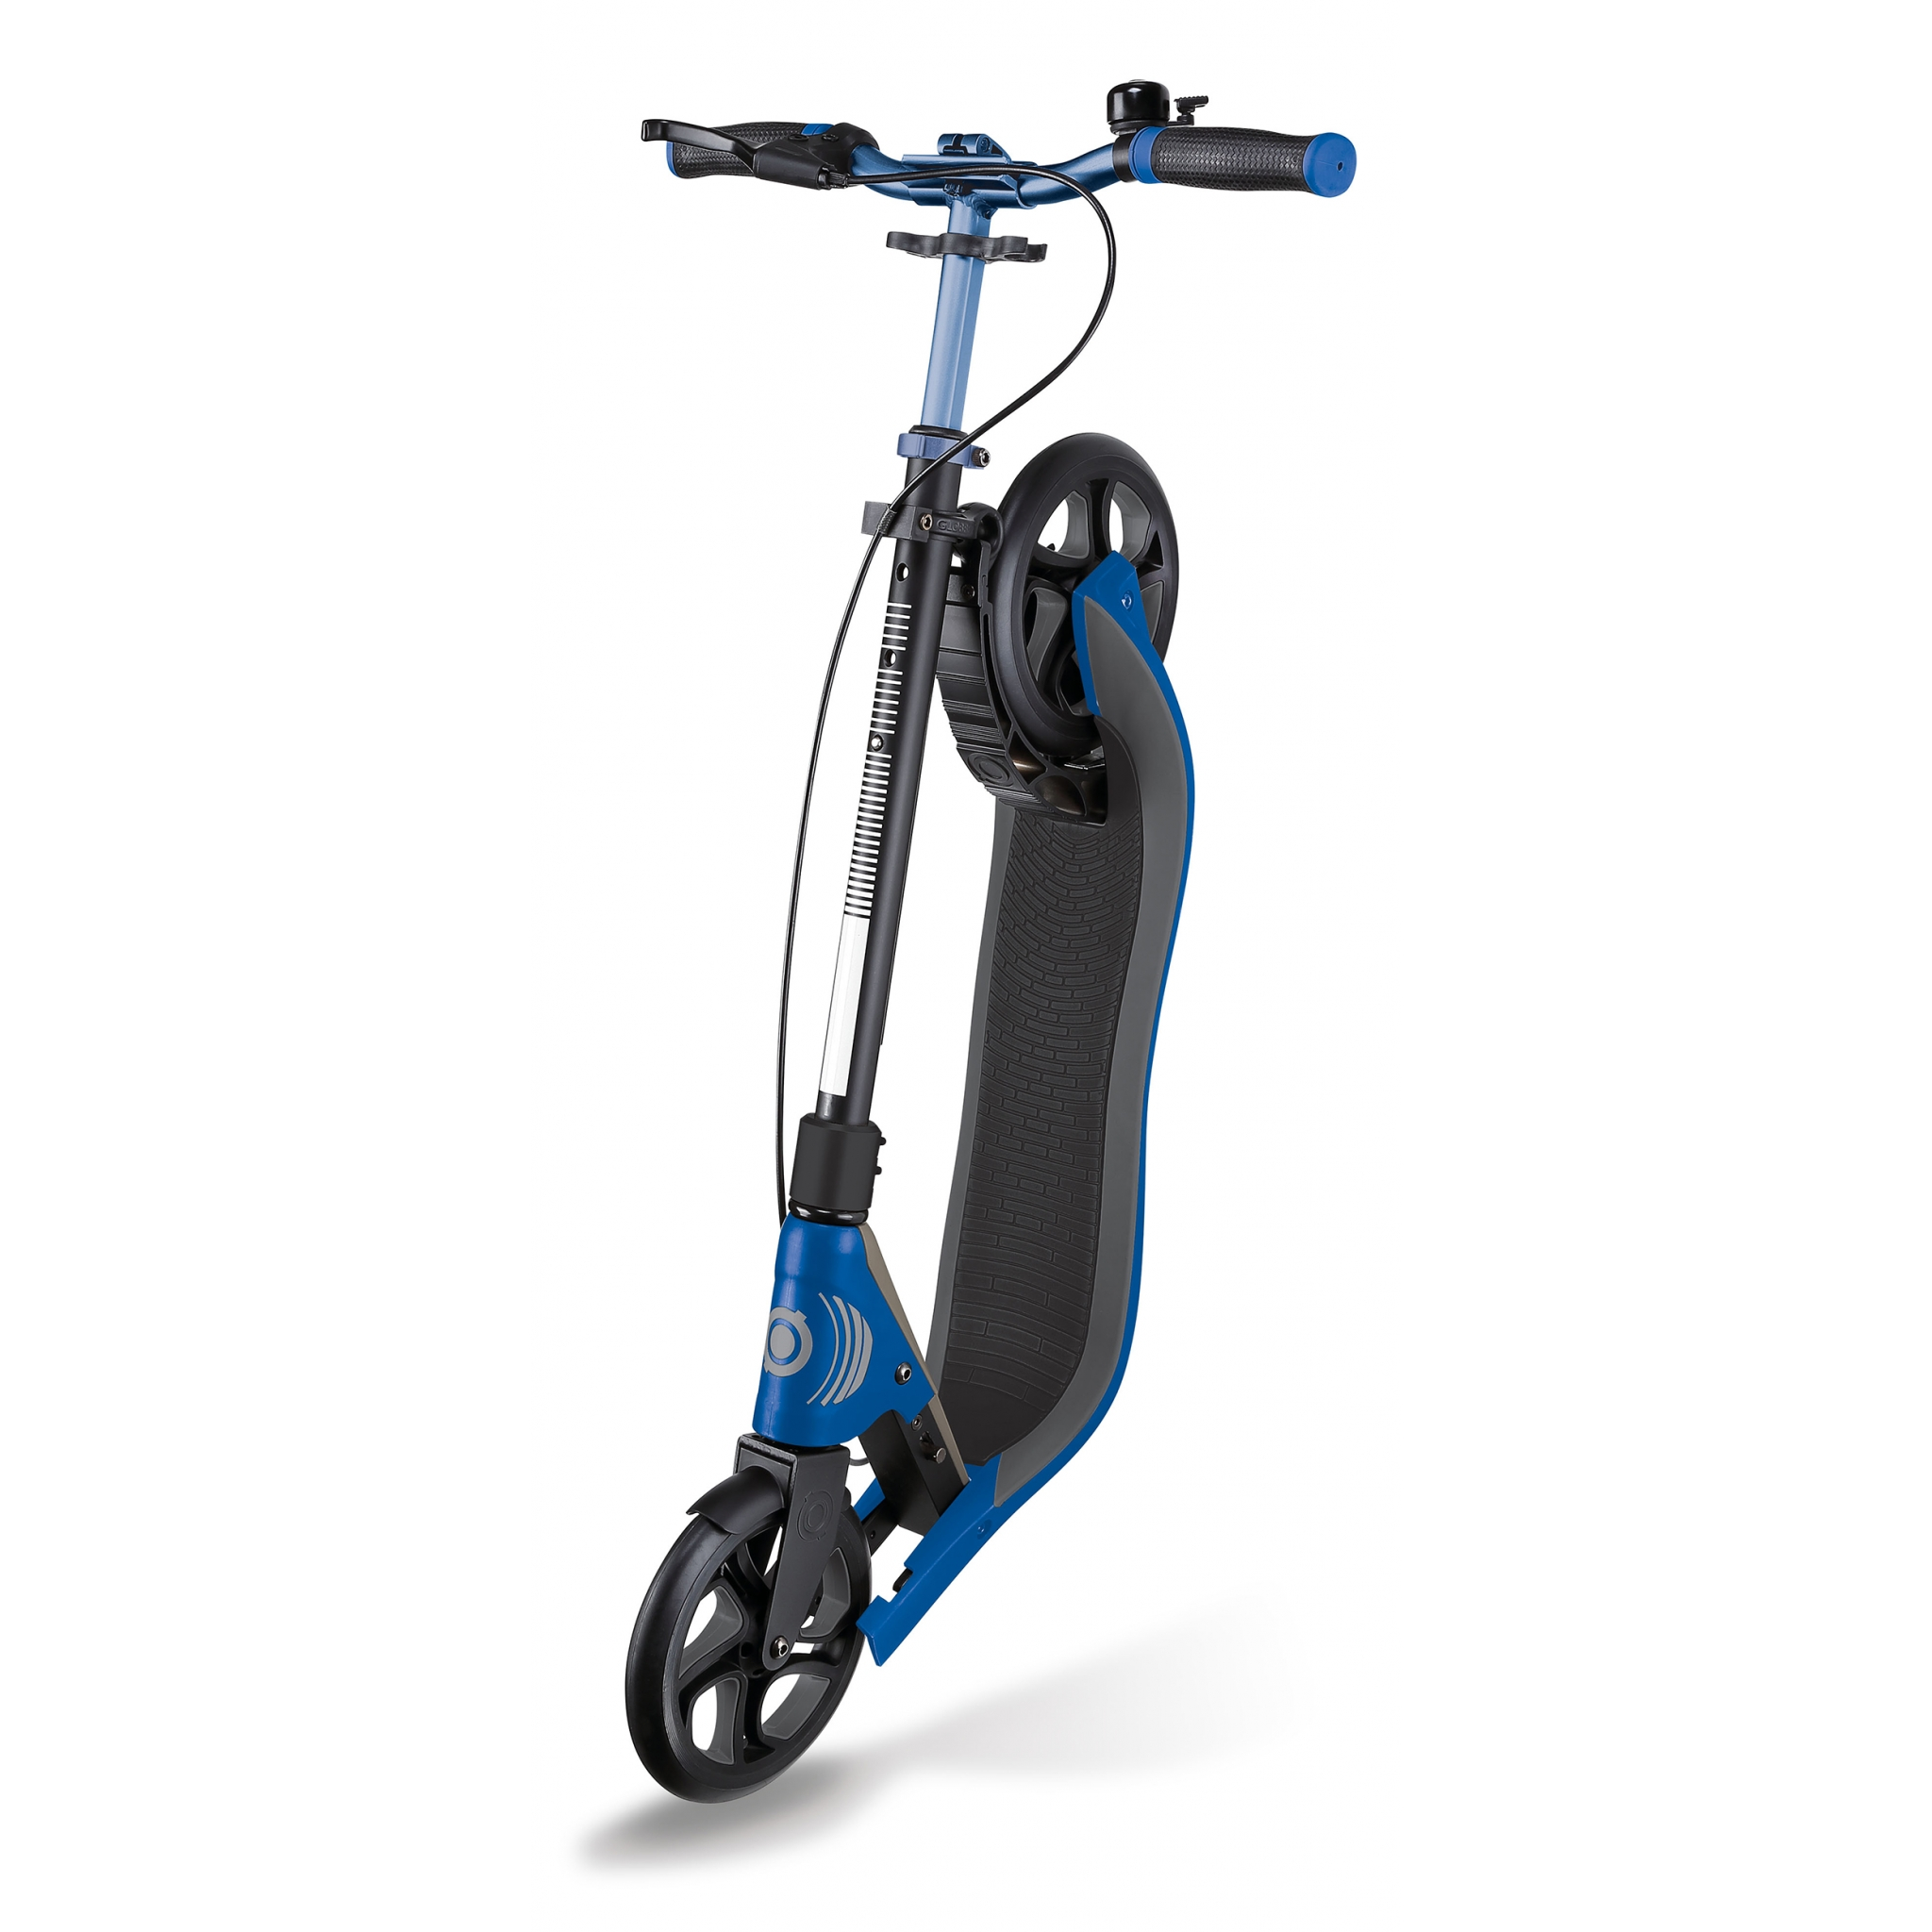 foldable scooter for adults with handbrake - Globber ONE NL 205 DELUXE 2